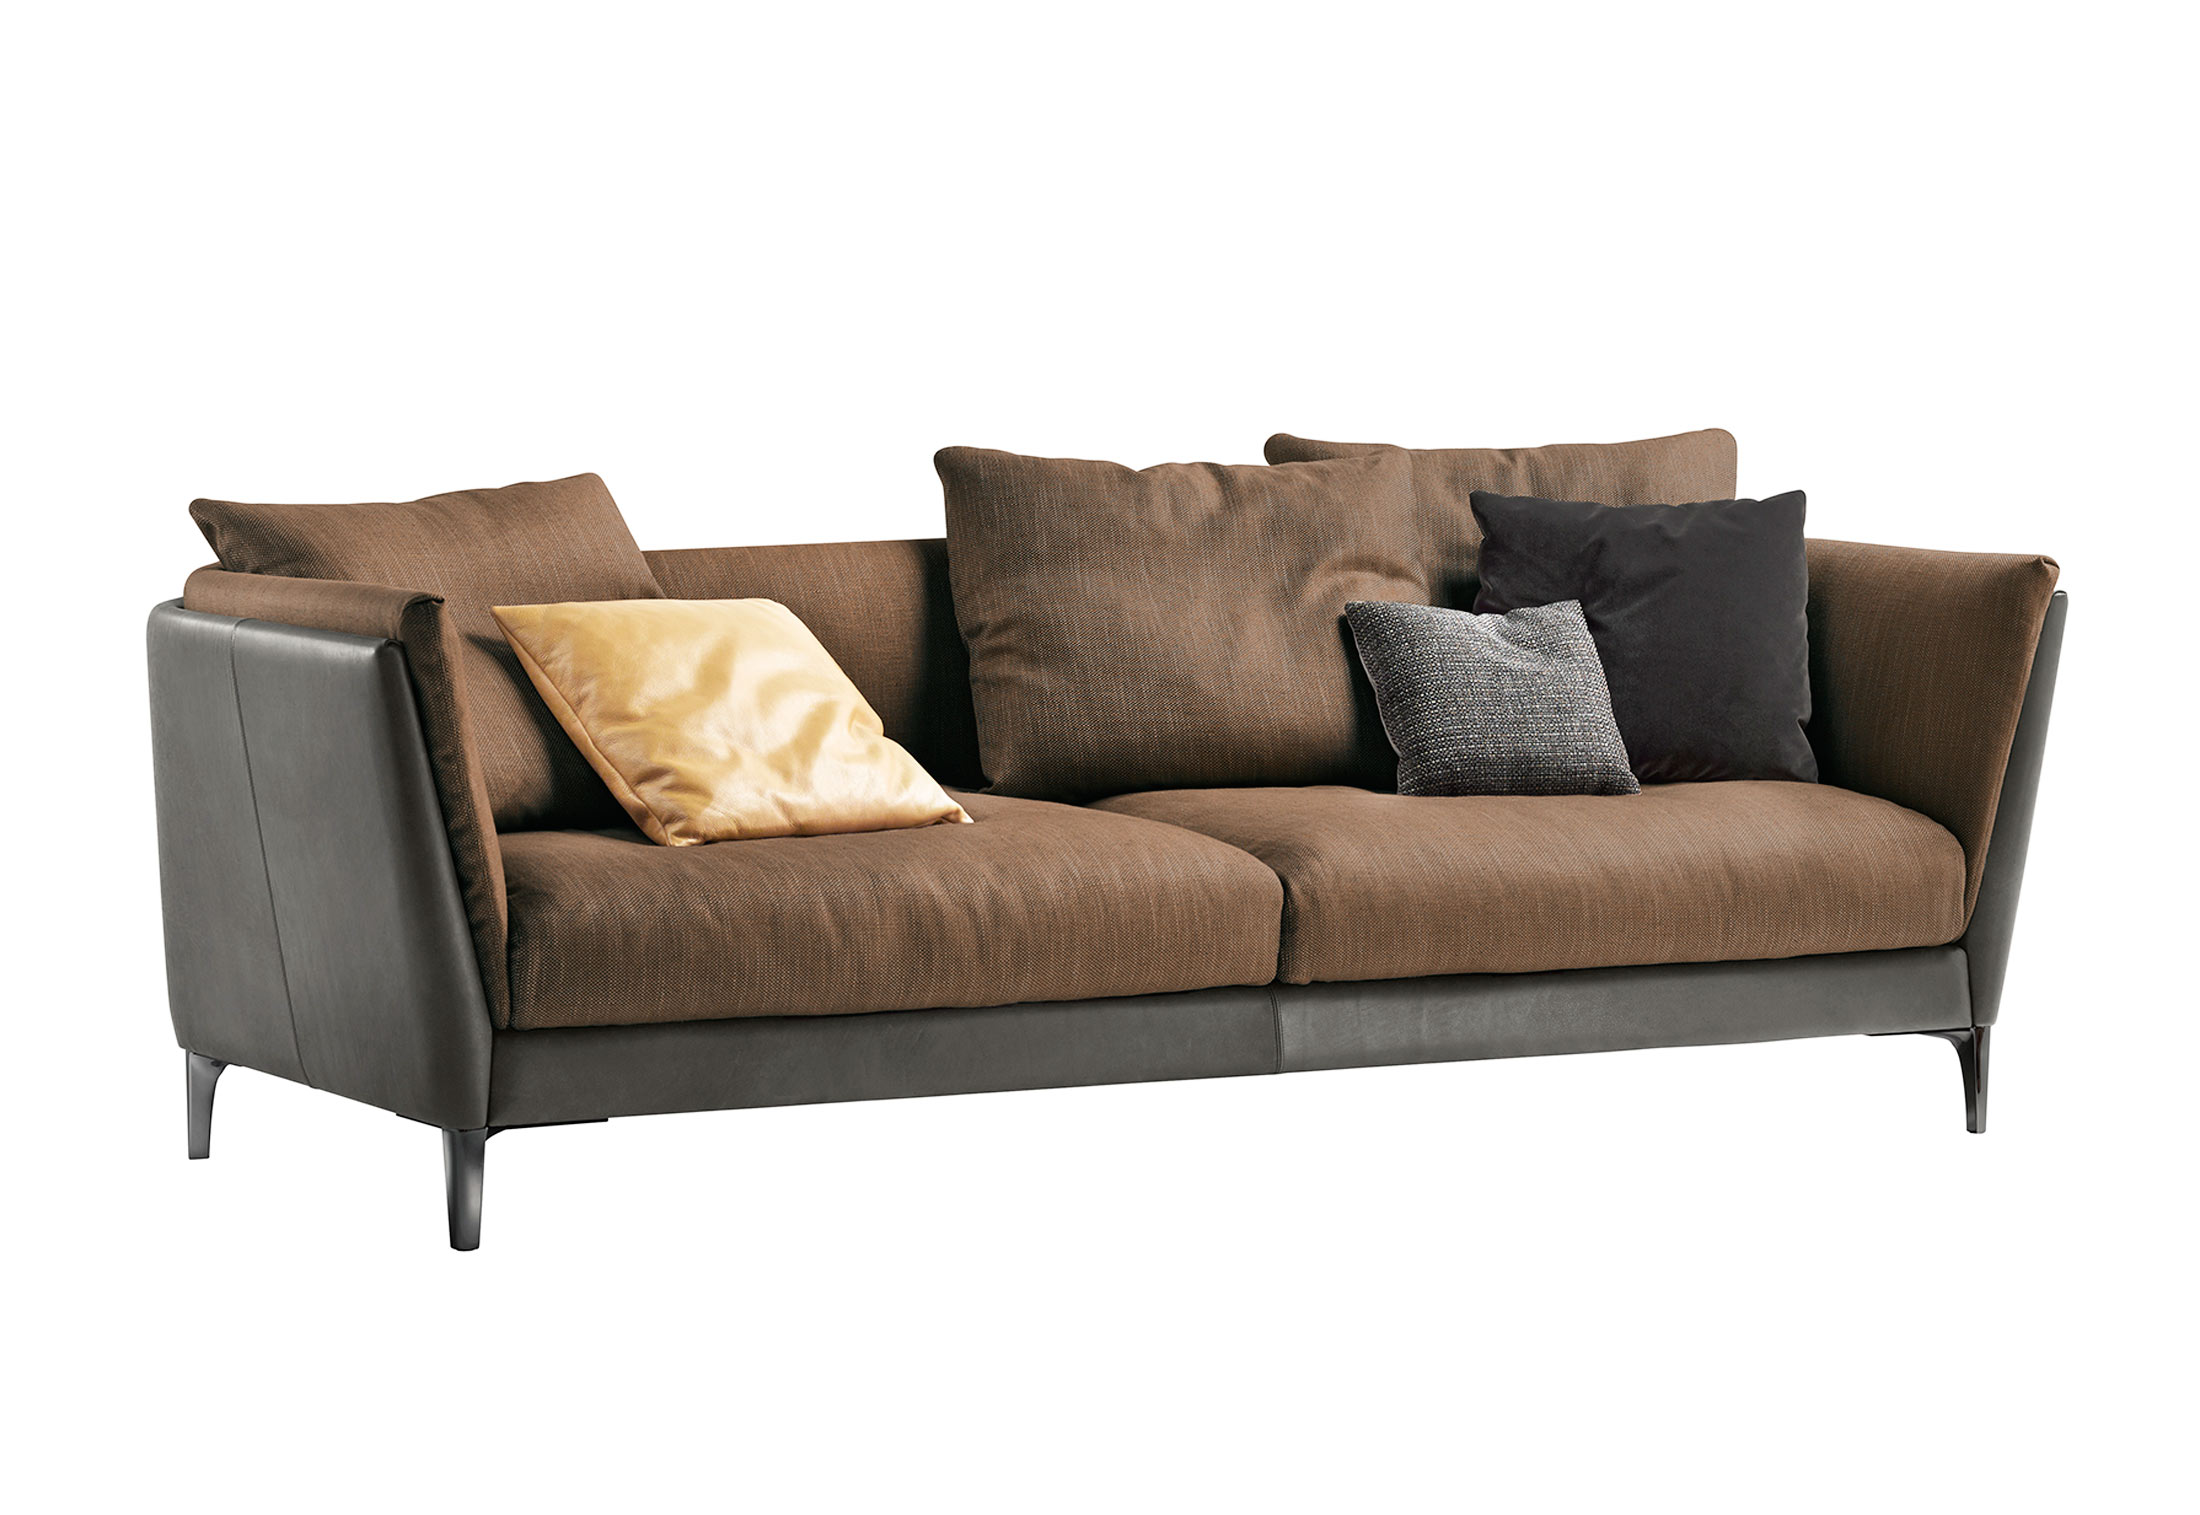 bretagne sofa 2 sitzer von poltrona frau stylepark. Black Bedroom Furniture Sets. Home Design Ideas